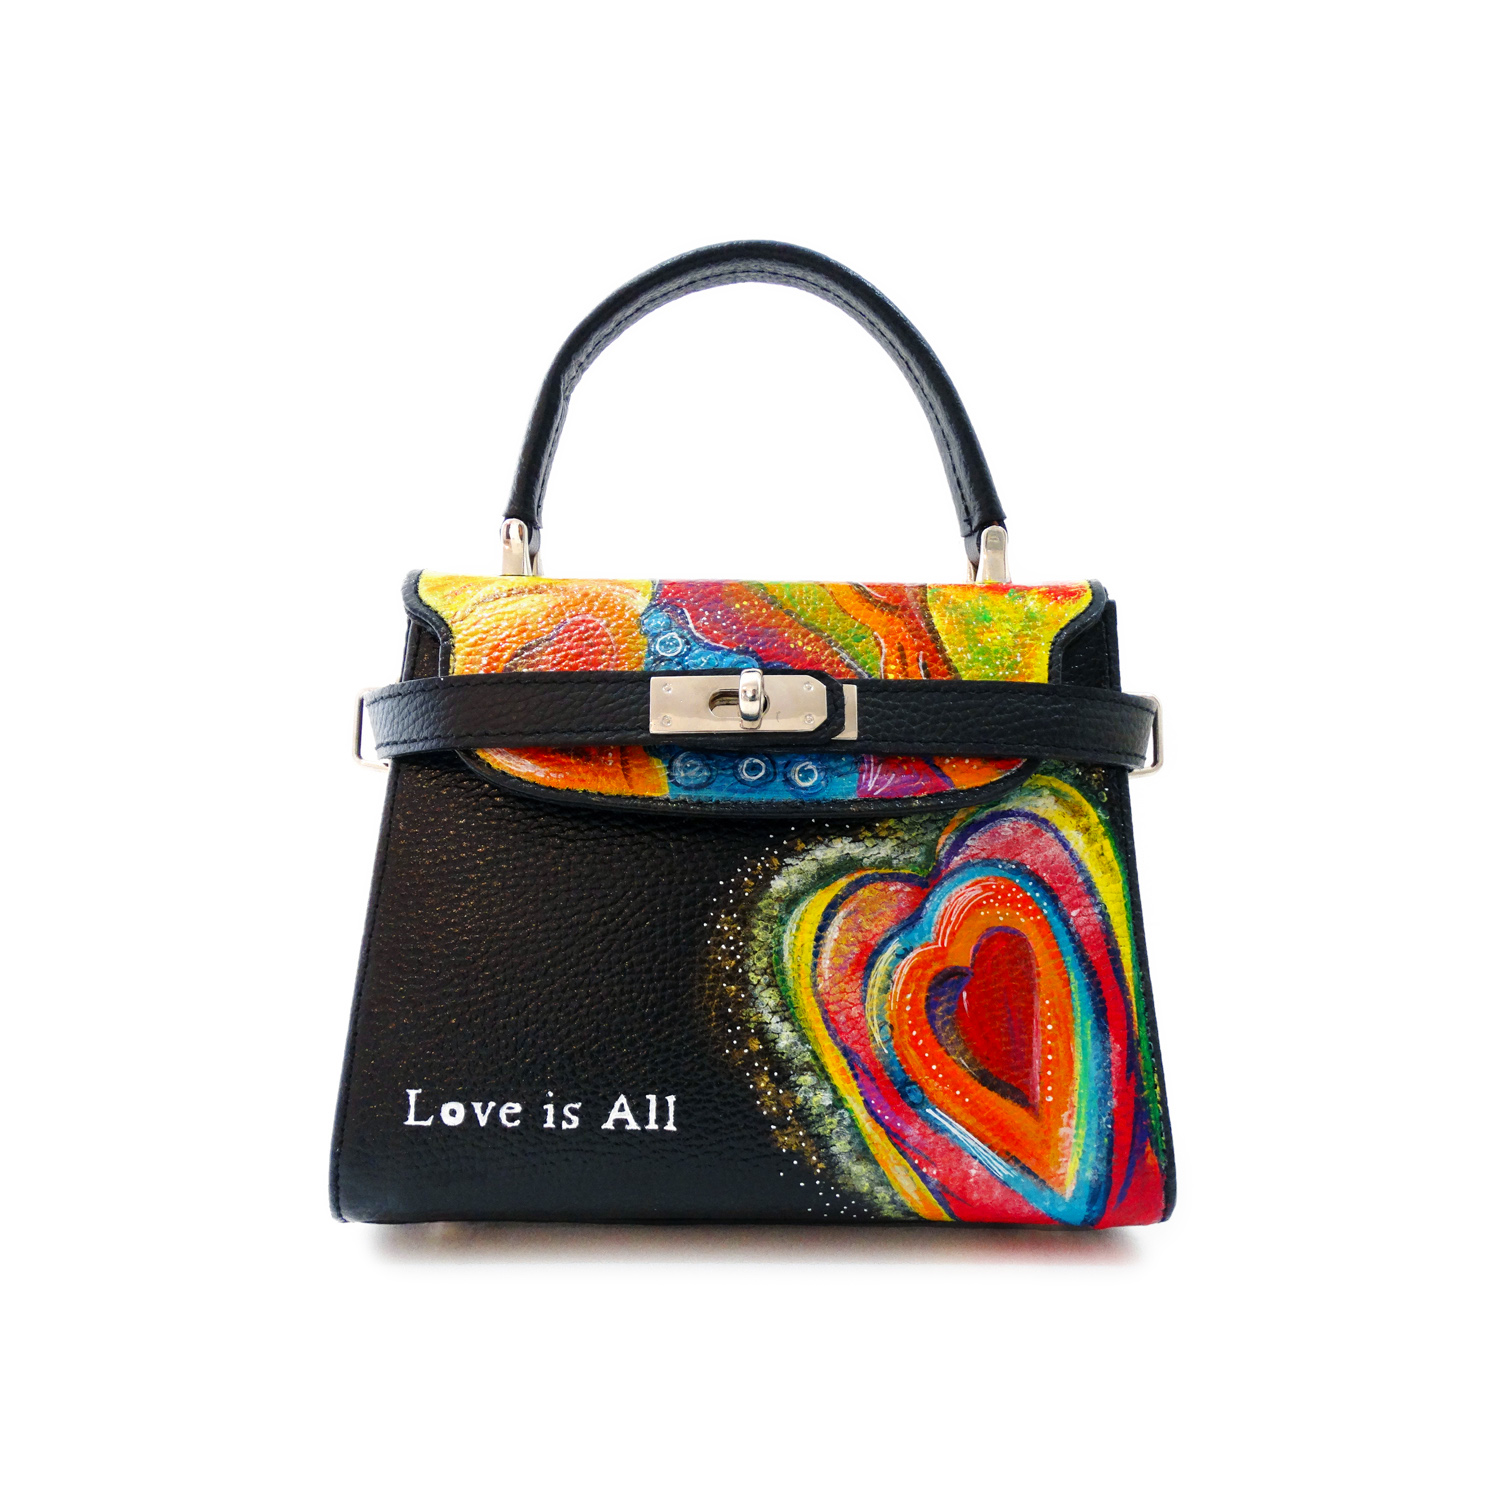 Hand-painted bag - Love is All